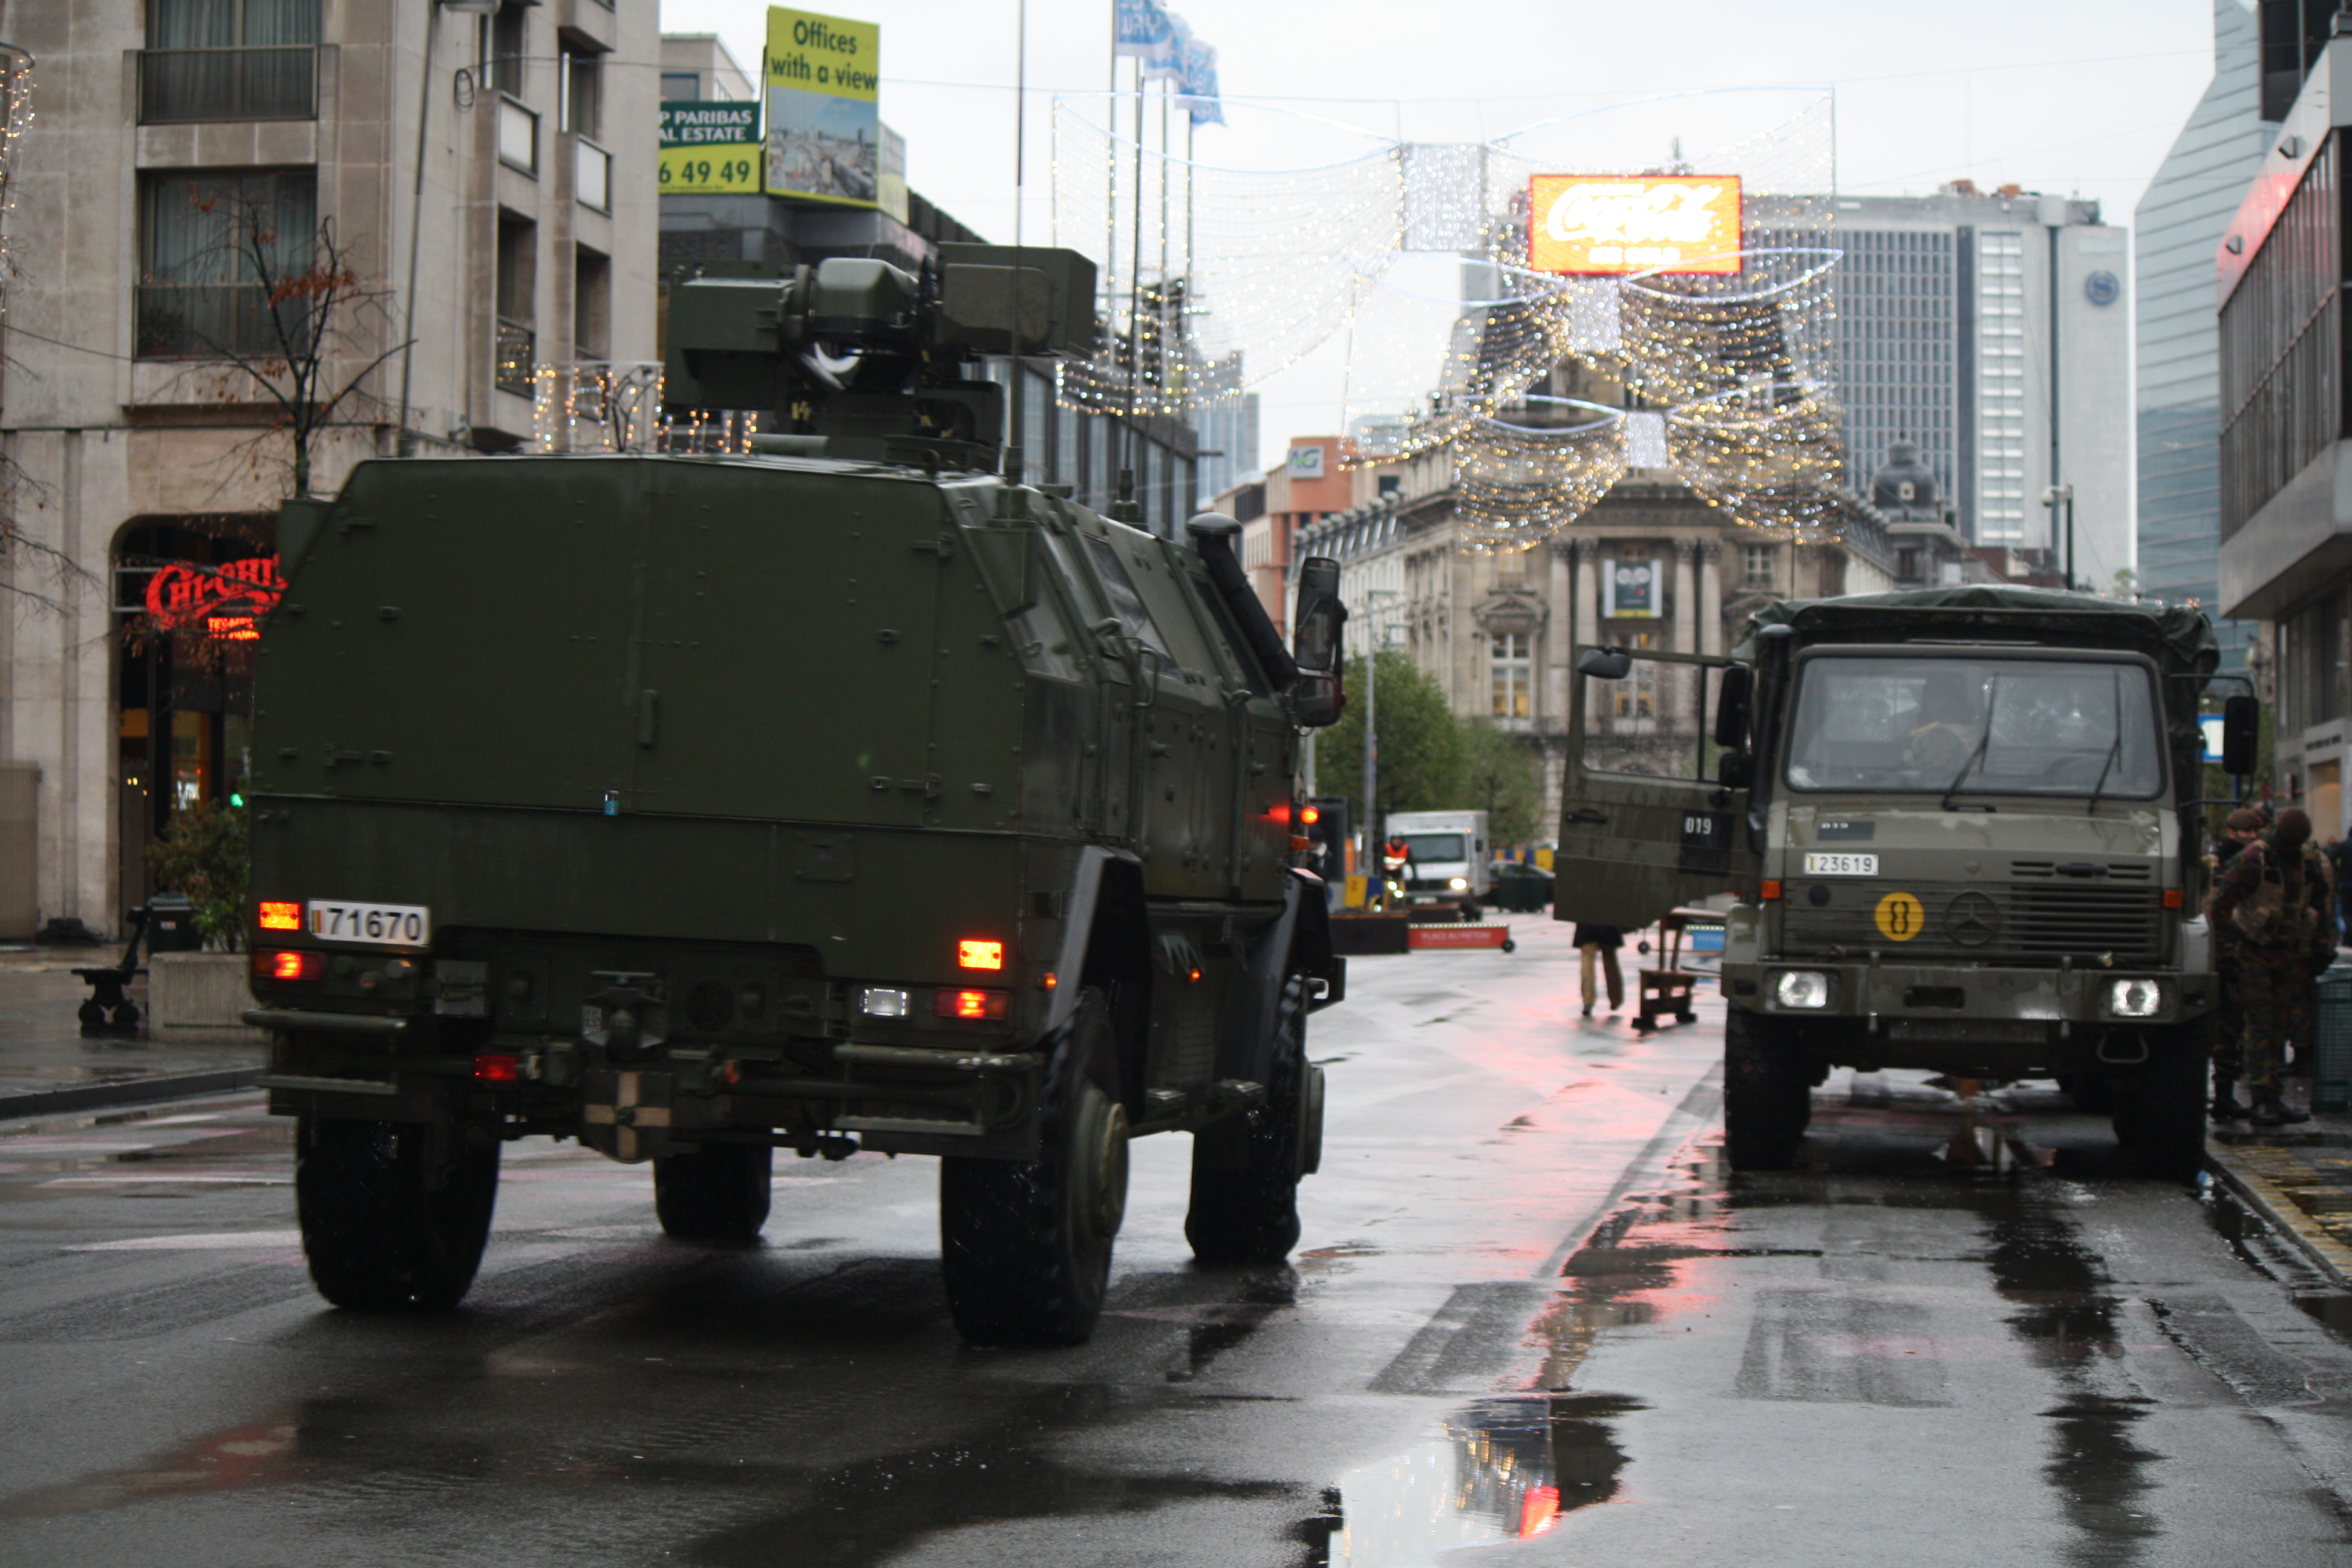 The military presence in Brussels appeared lighter on Tuesday as schools prepared to reopen on Wednesday, Nov. 24, 2015.